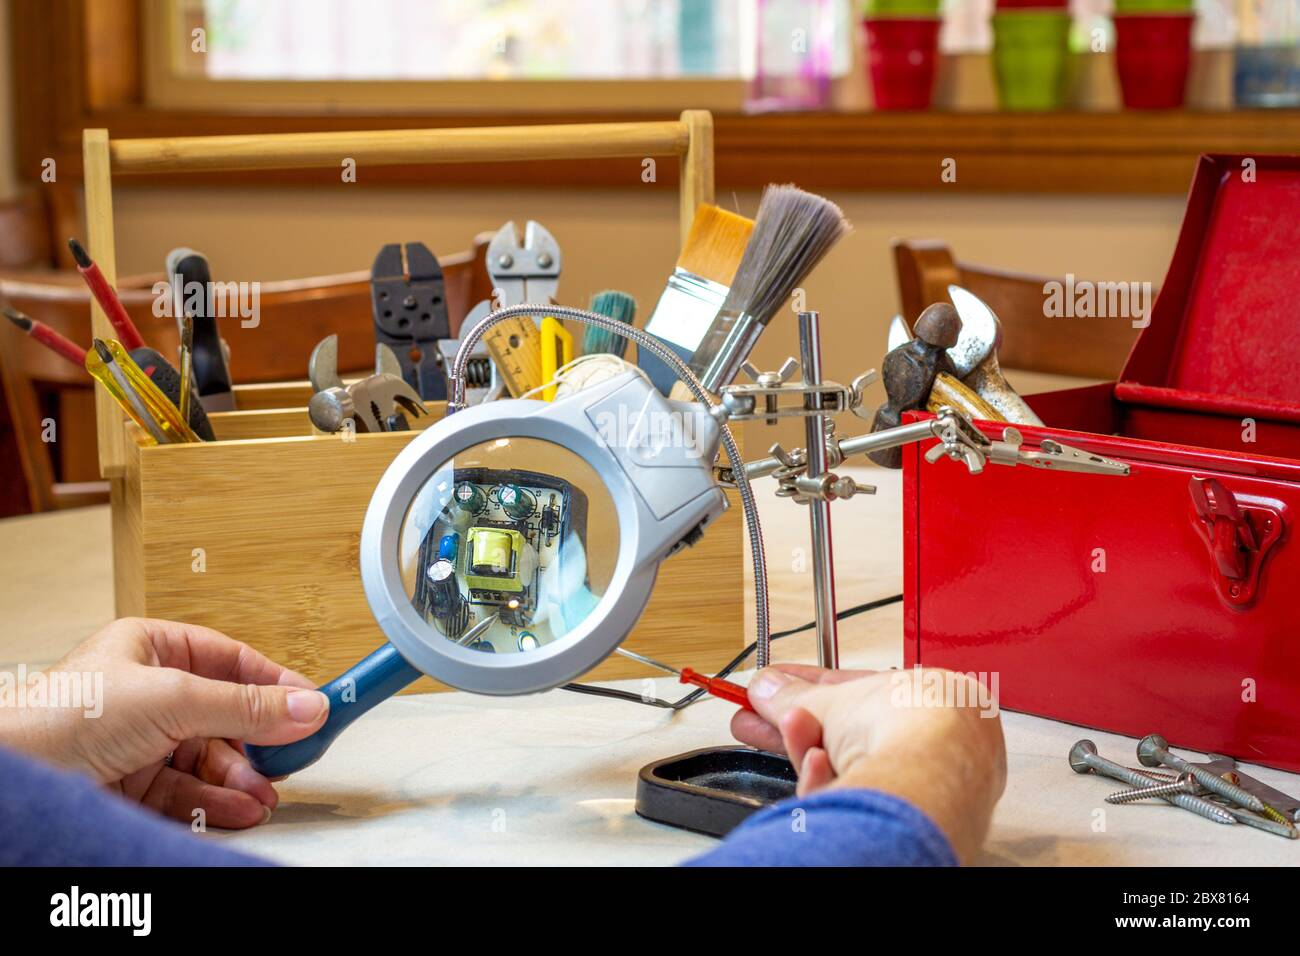 Person using tools and magnifying glass repairing household item at community repair event at cafe, Repair Cafe movement, consumer activism to repair Stock Photo